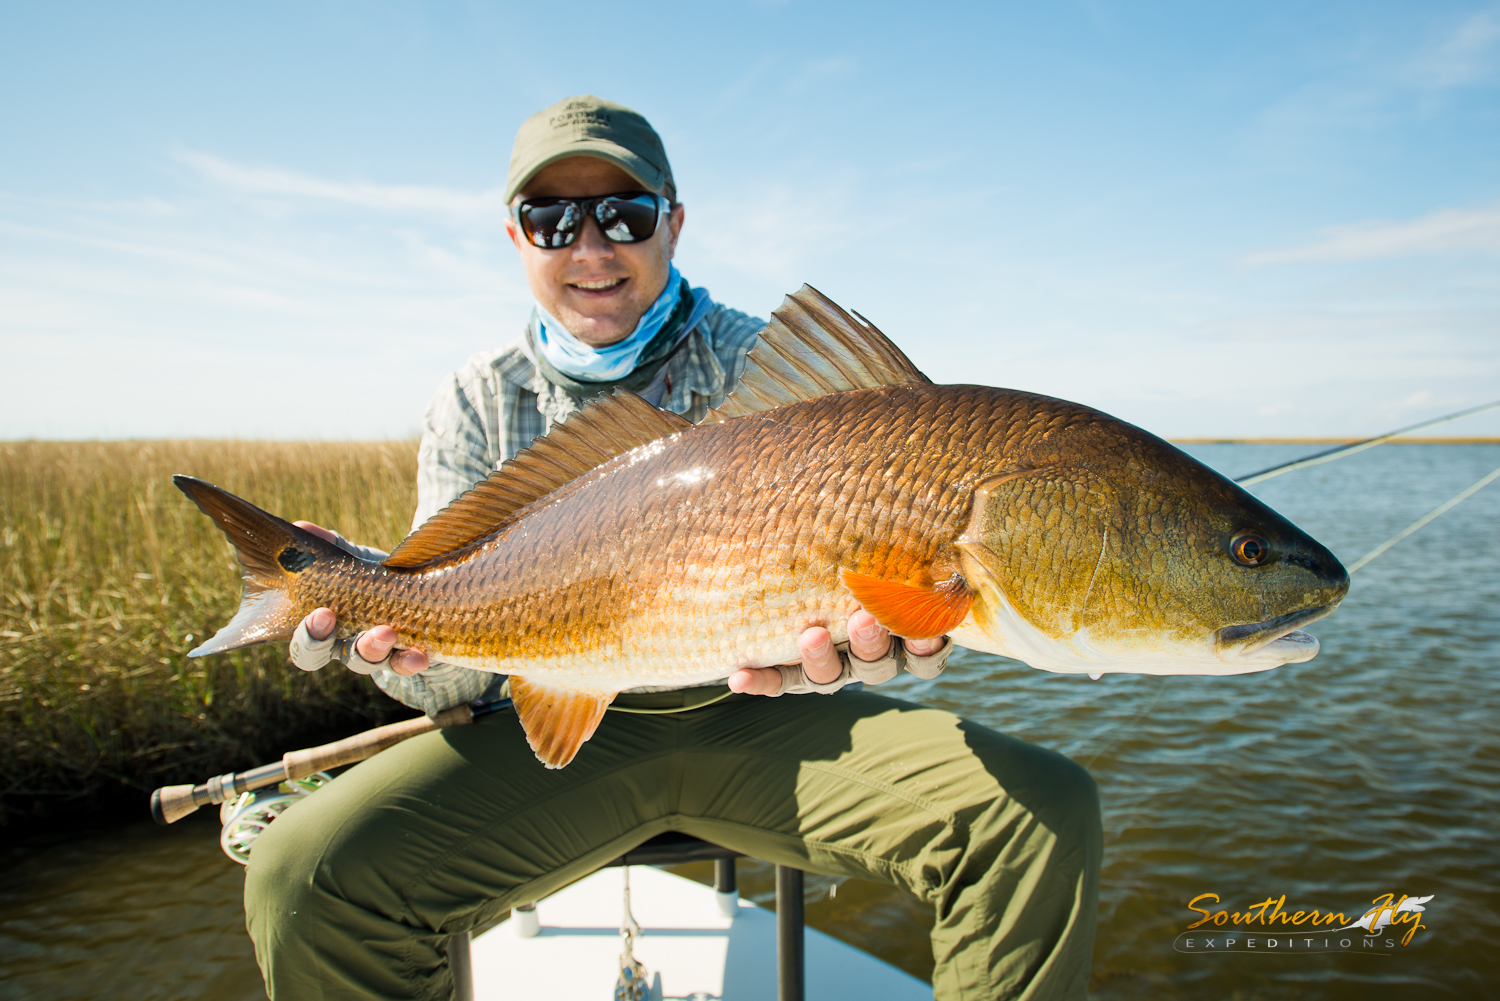 Sight Fishing Guide Delecroix La Southern Fly Expeditions